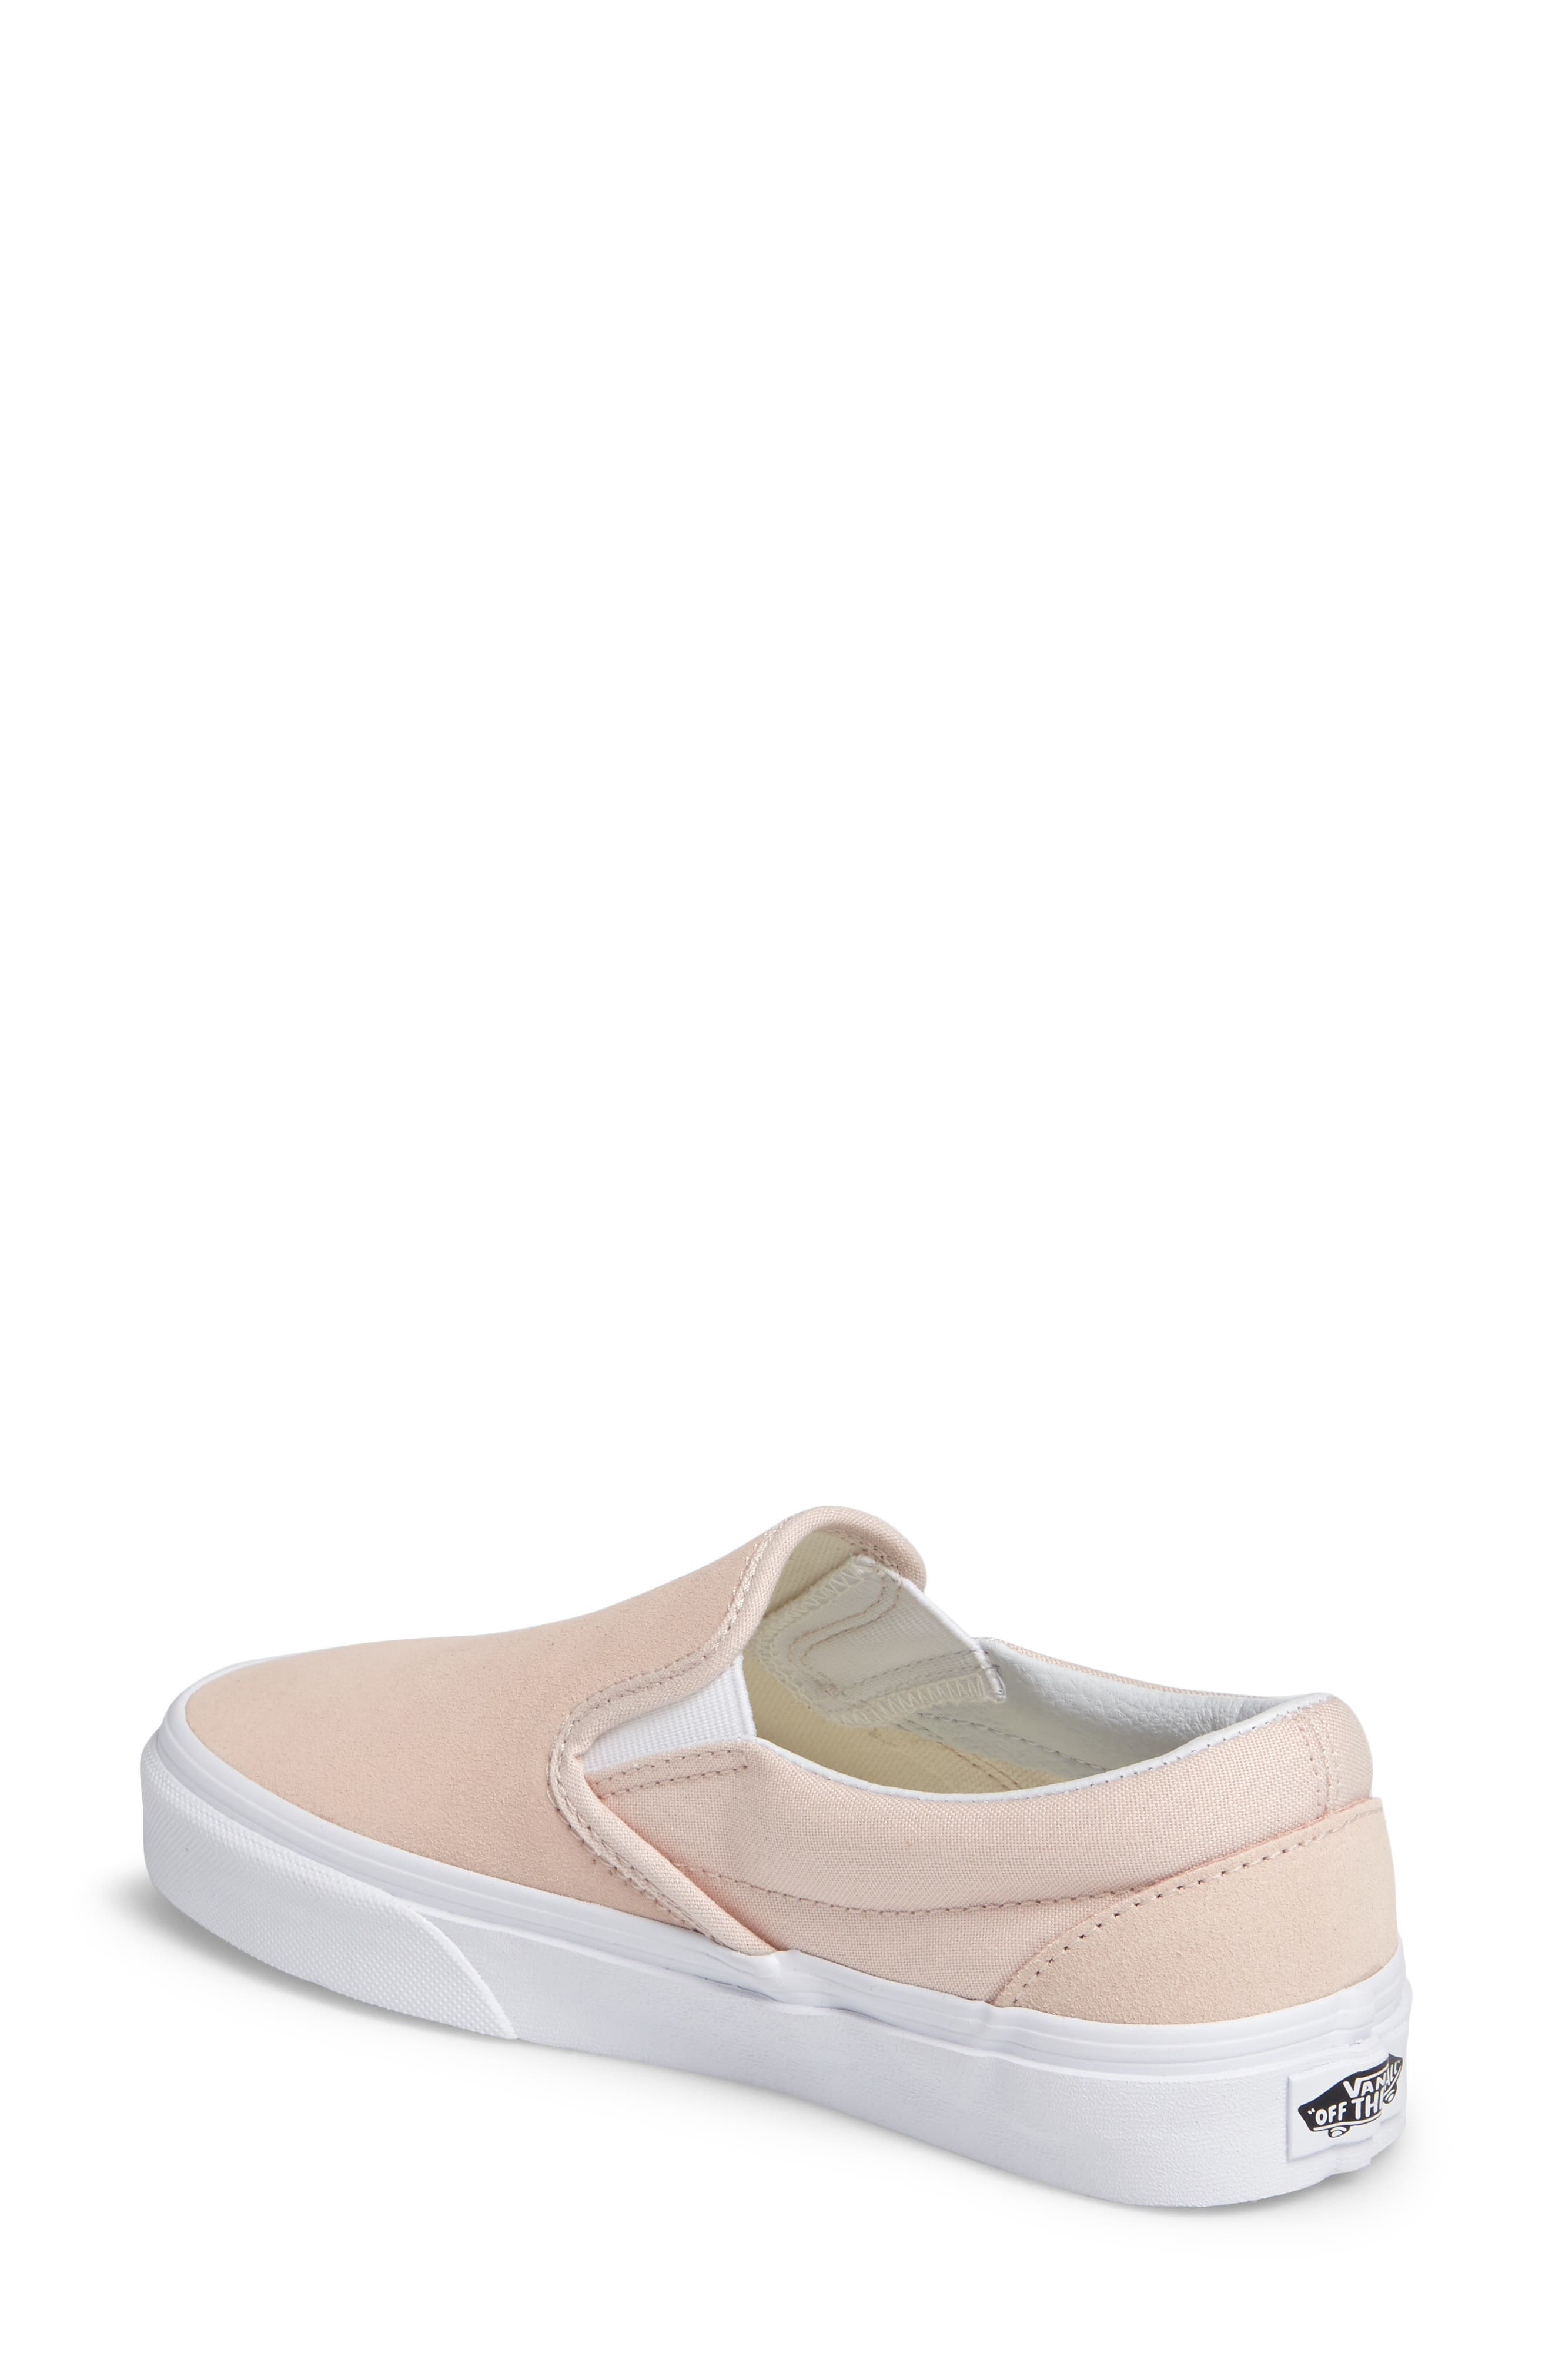 Classic Slip-On Sneaker,                             Alternate thumbnail 169, color,